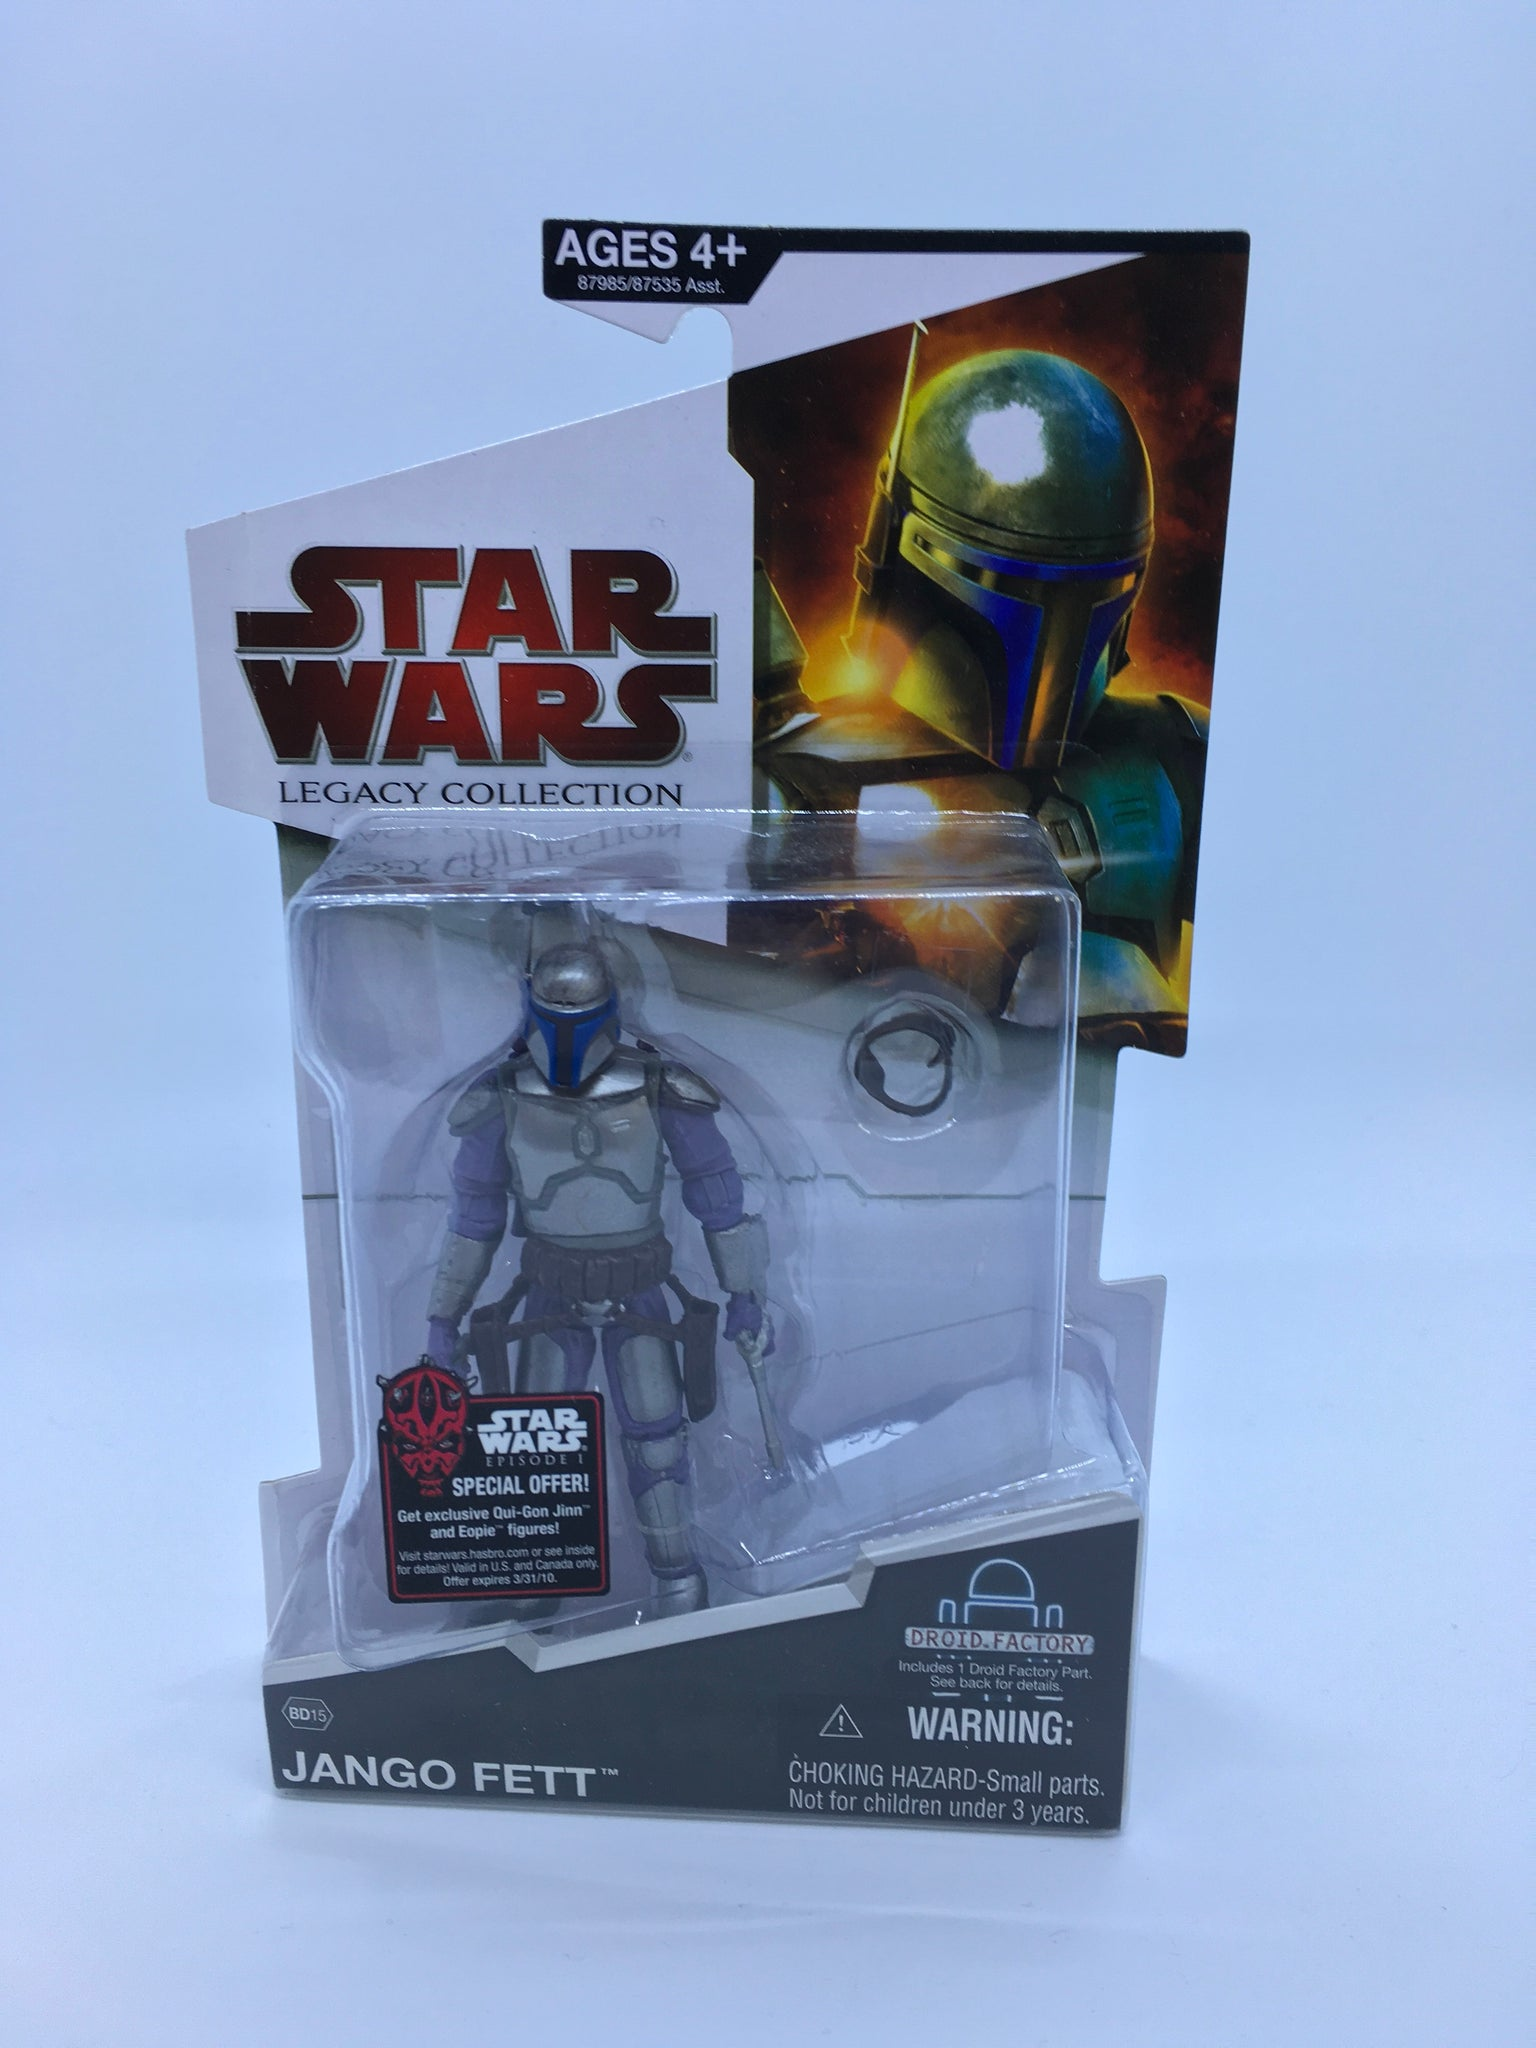 Star Wars Legacy Collection Jango Fett Build-a-Droid MOC